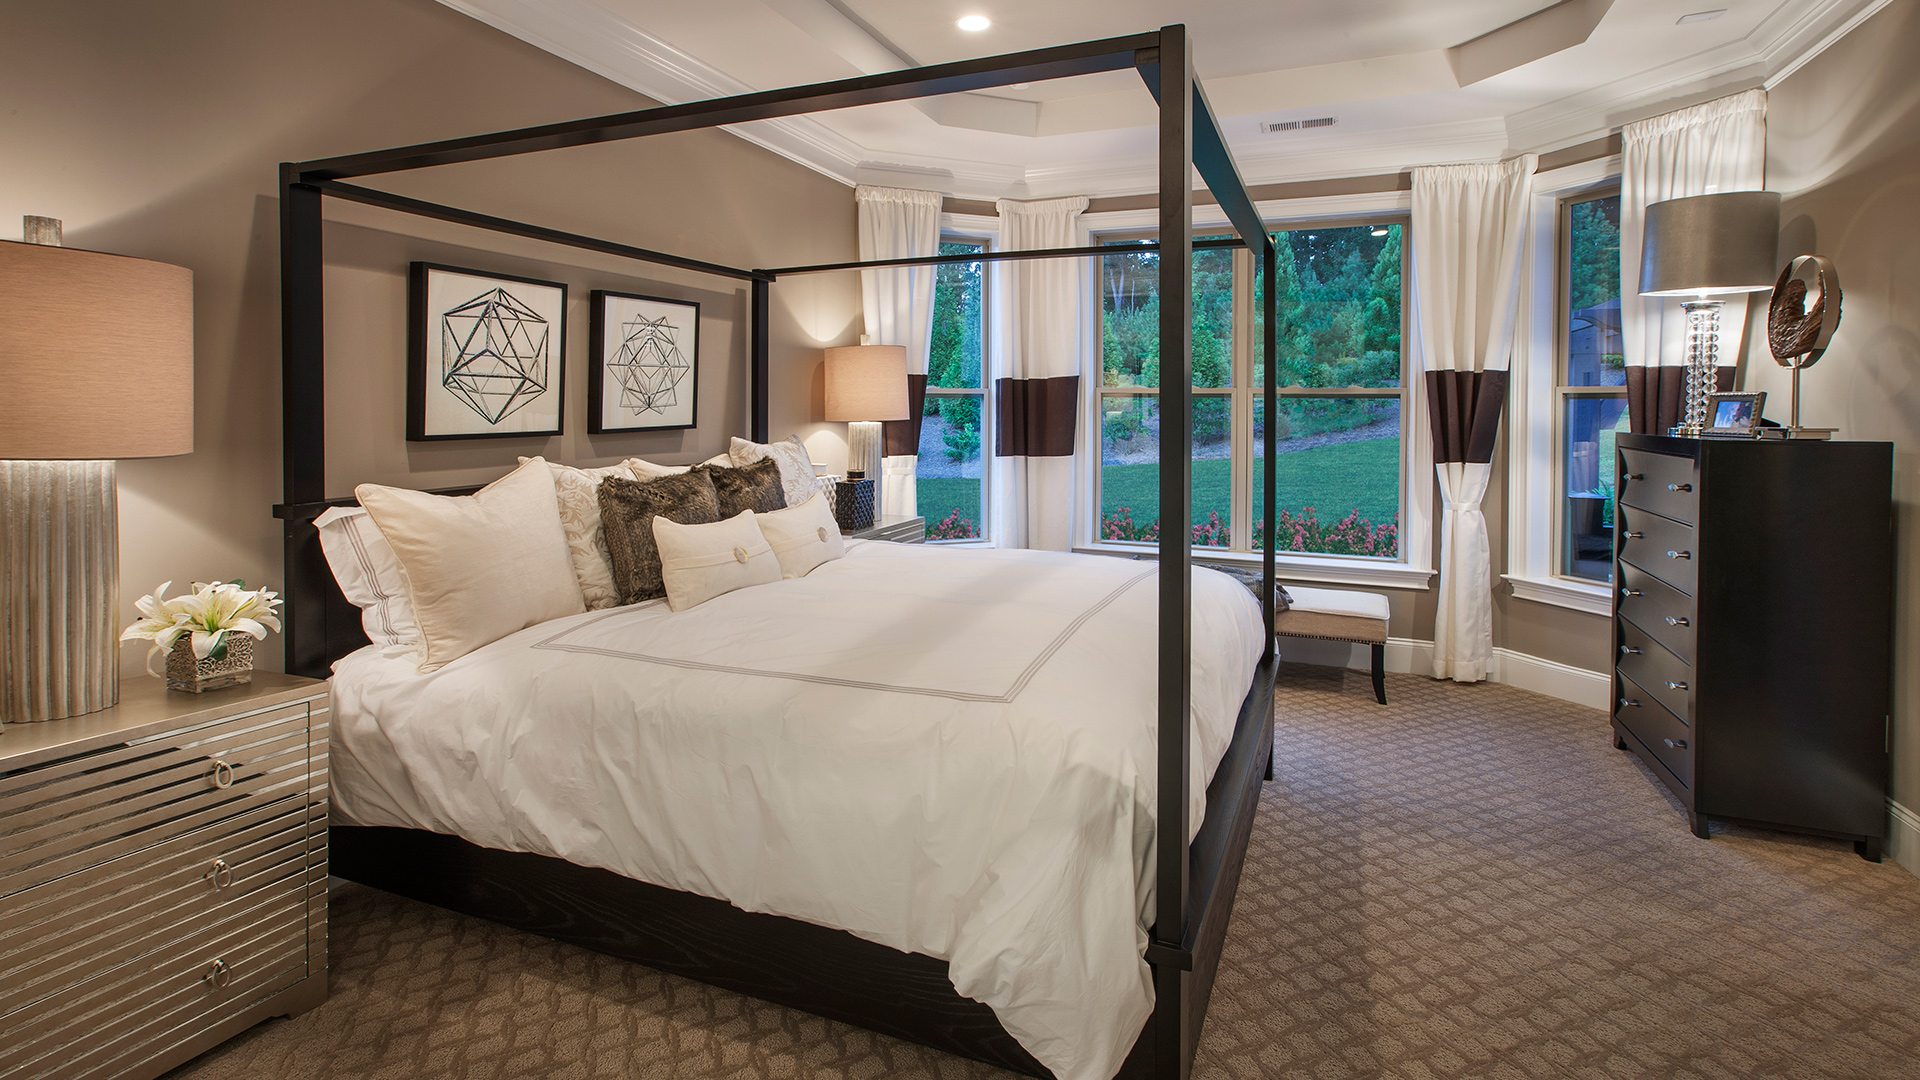 The Waverly primary bedroom suite